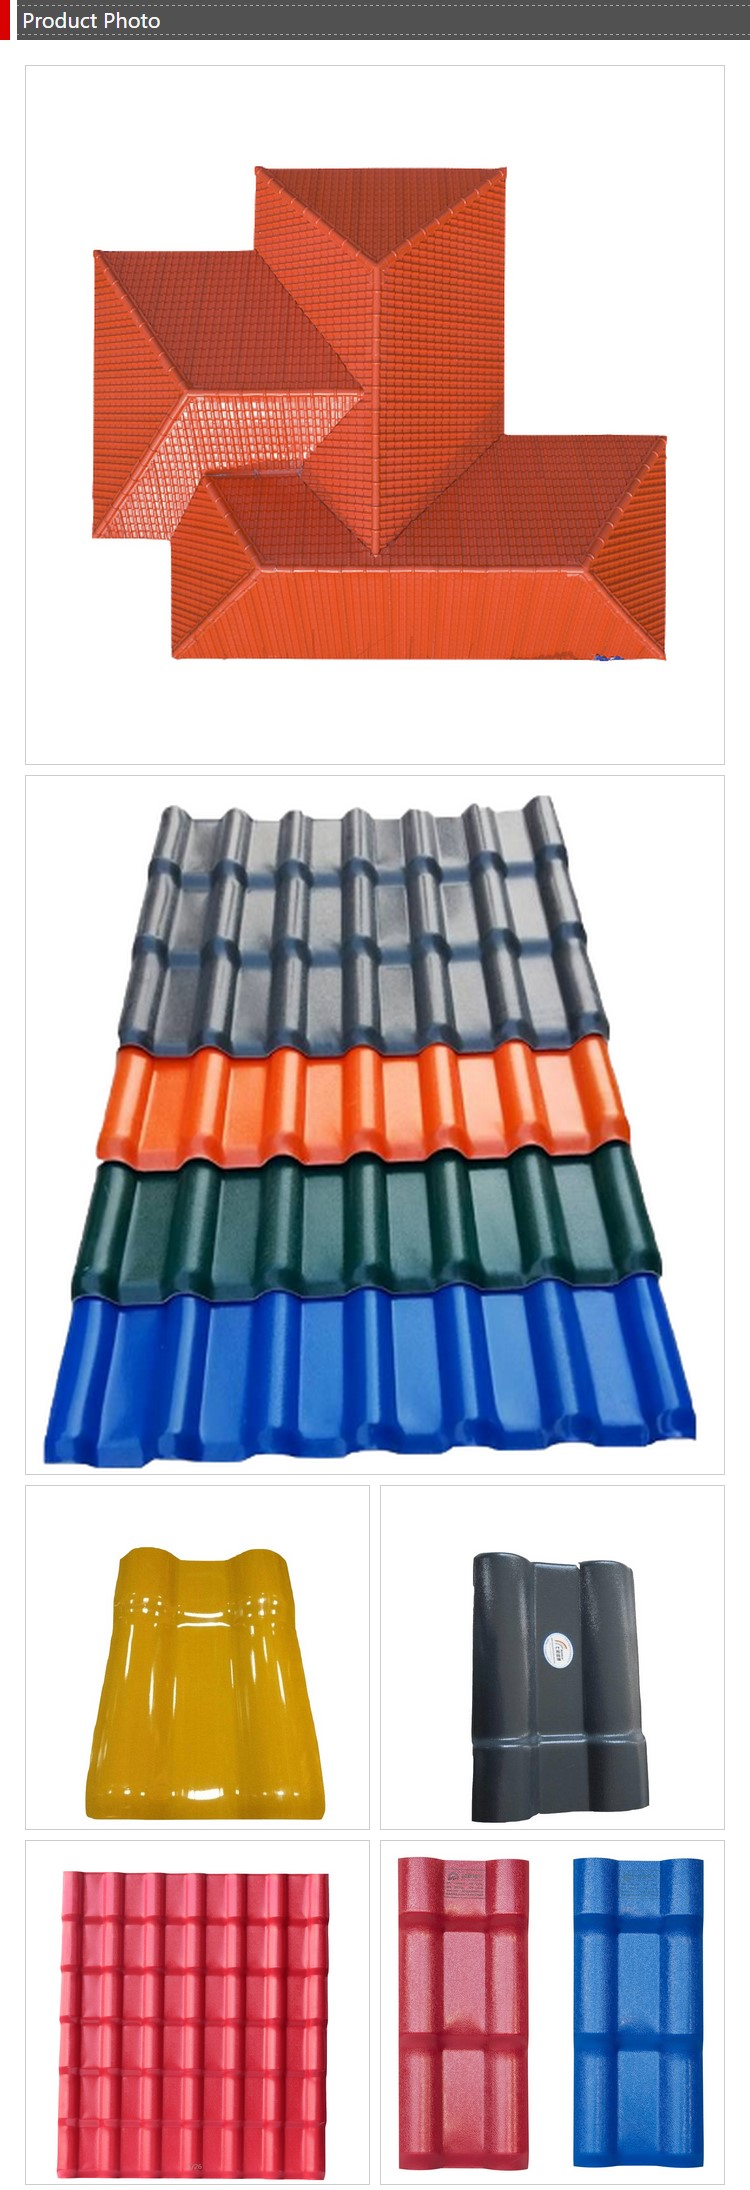 Yuehao plastic roof tiles wholesaler tiles lightweight plastic roof tiles design for water draining-6